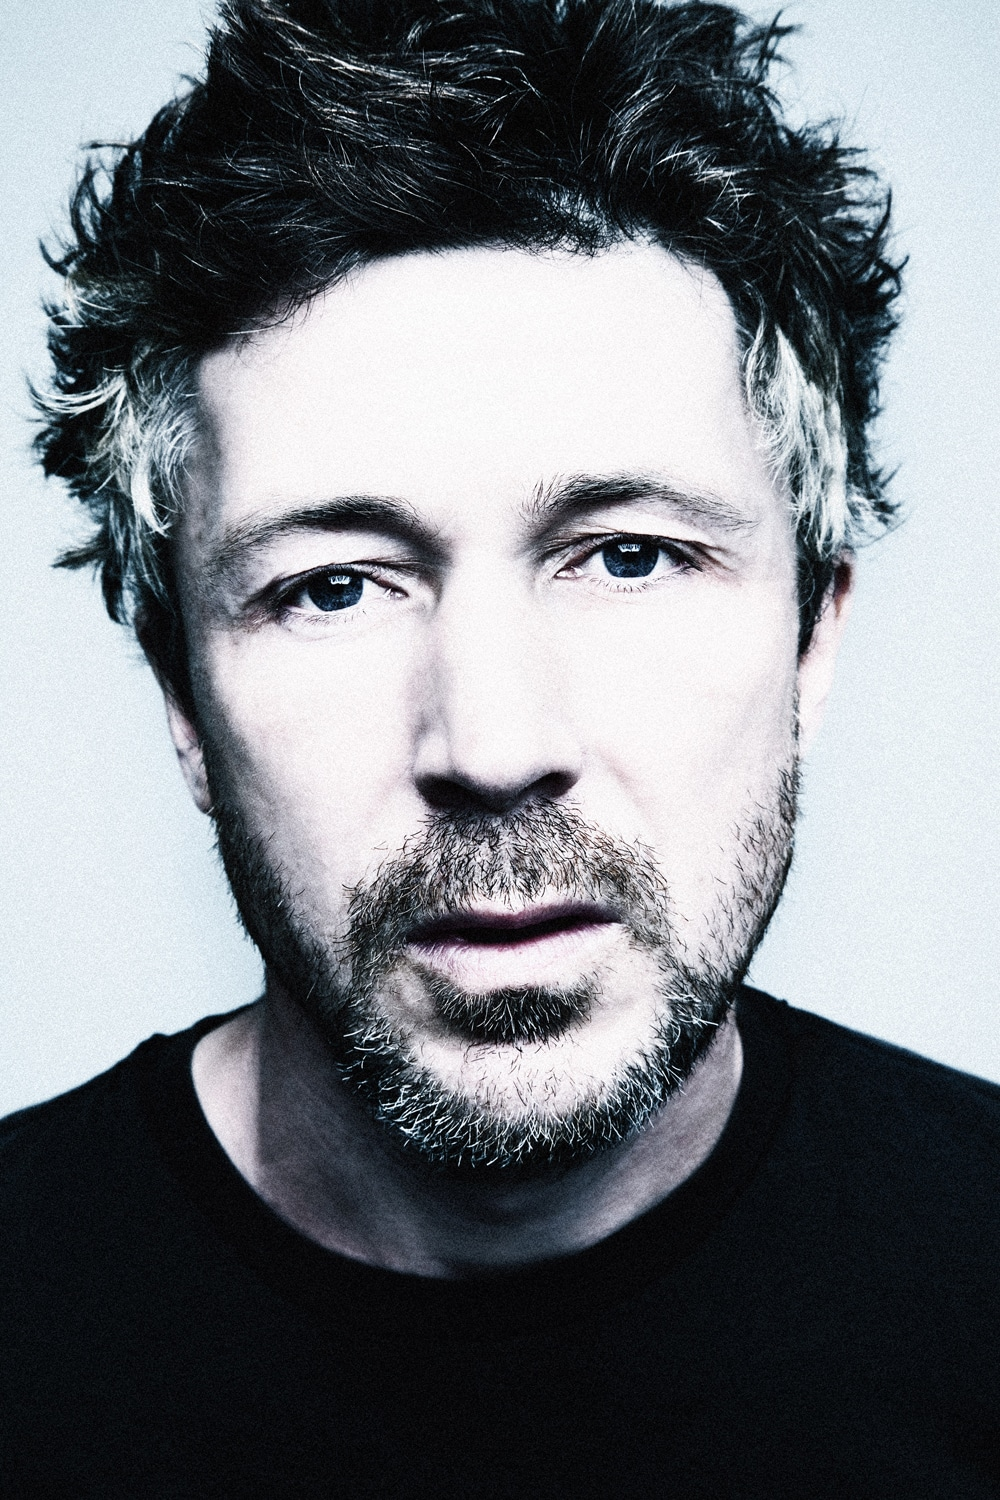 AIDEN GILLEN PHOTOGRAPHED BY BARRY MCCALL FOR PHO20GRAPHY